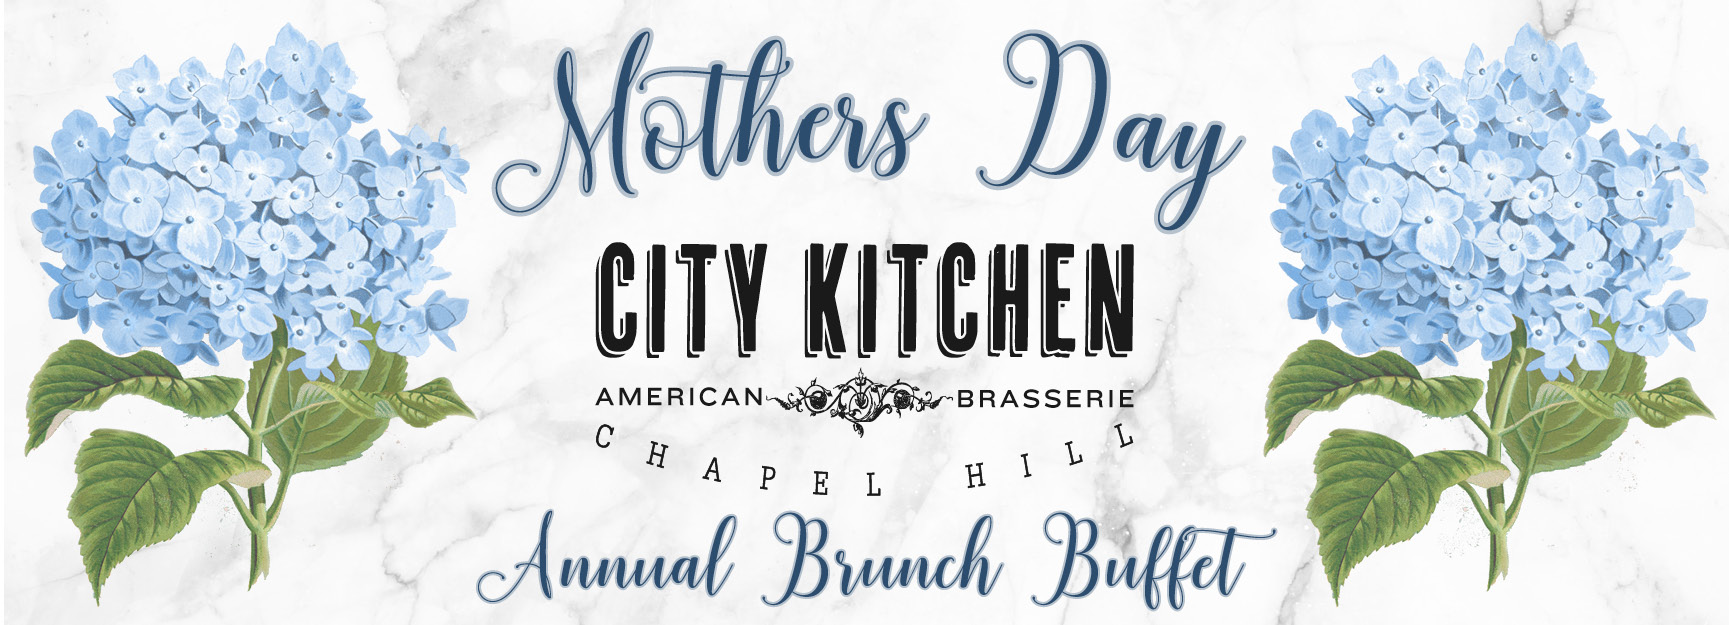 City kitchen american brasserie invites you to celebrate amazing brains moms with us this may for dinner service may 10th 12th and lunch service on